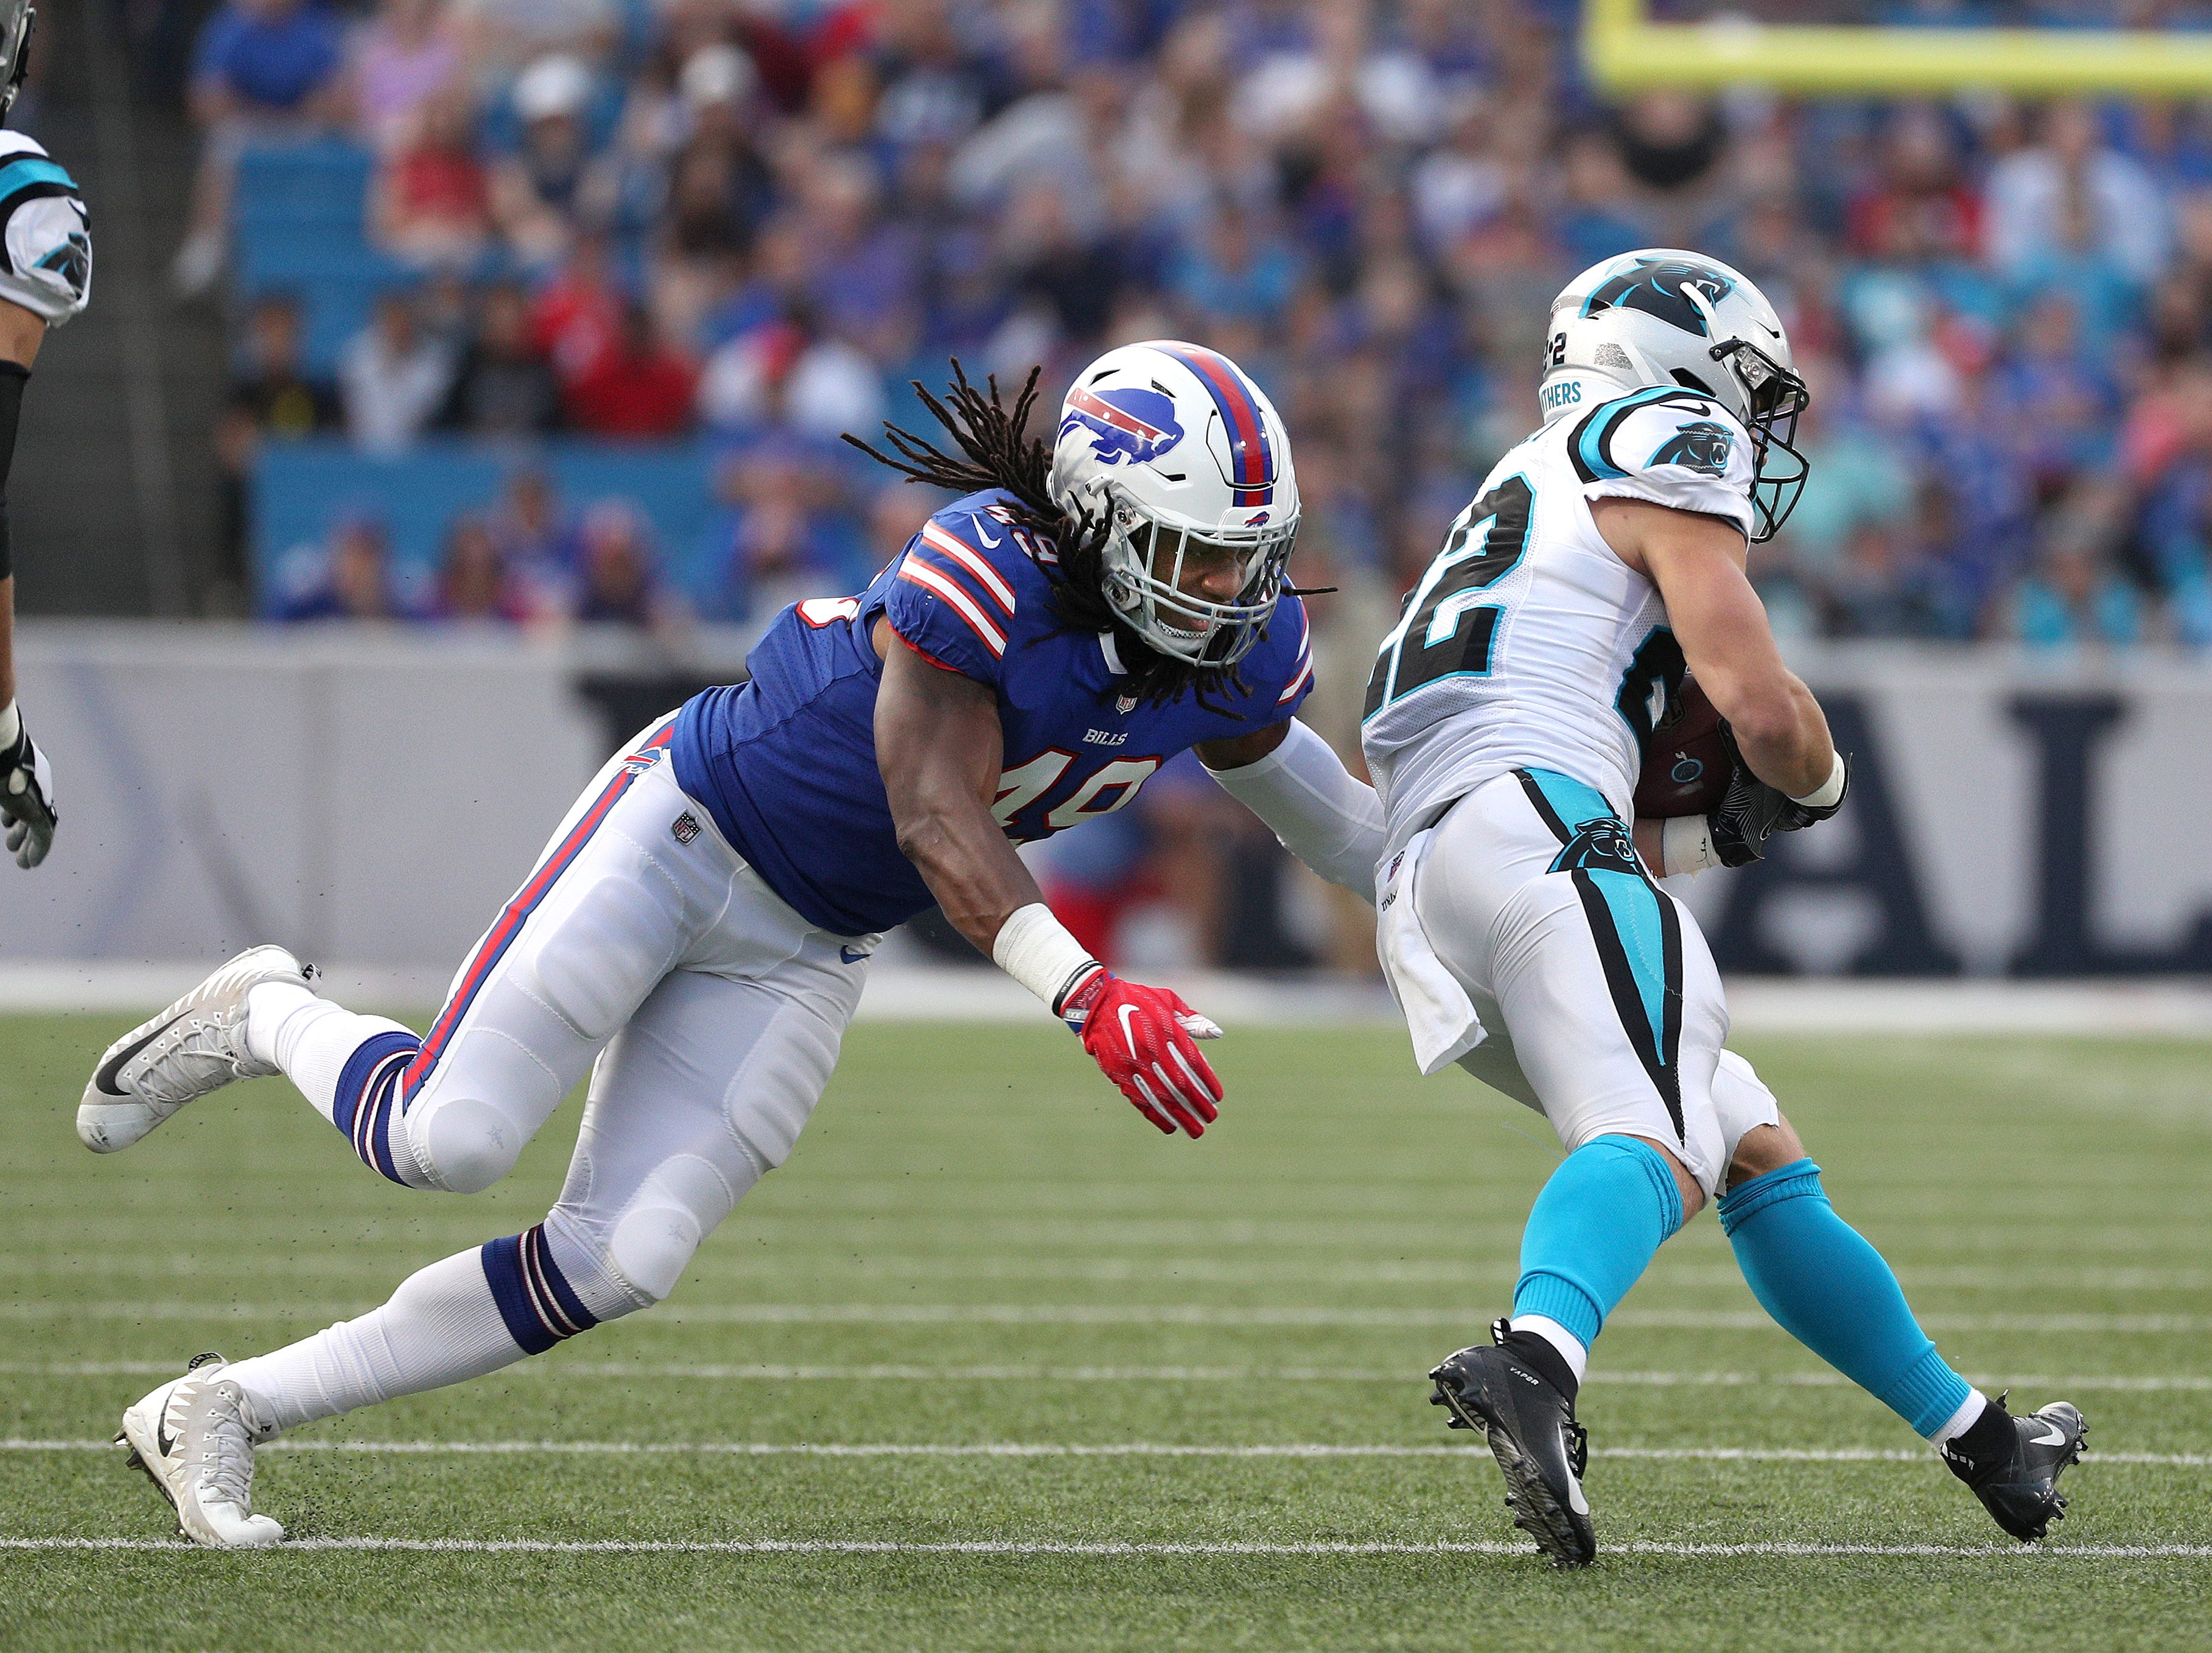 Bills linebacker Tremaine Edmunds looks to make the tackle on Carolina's Christian McCaffrey.